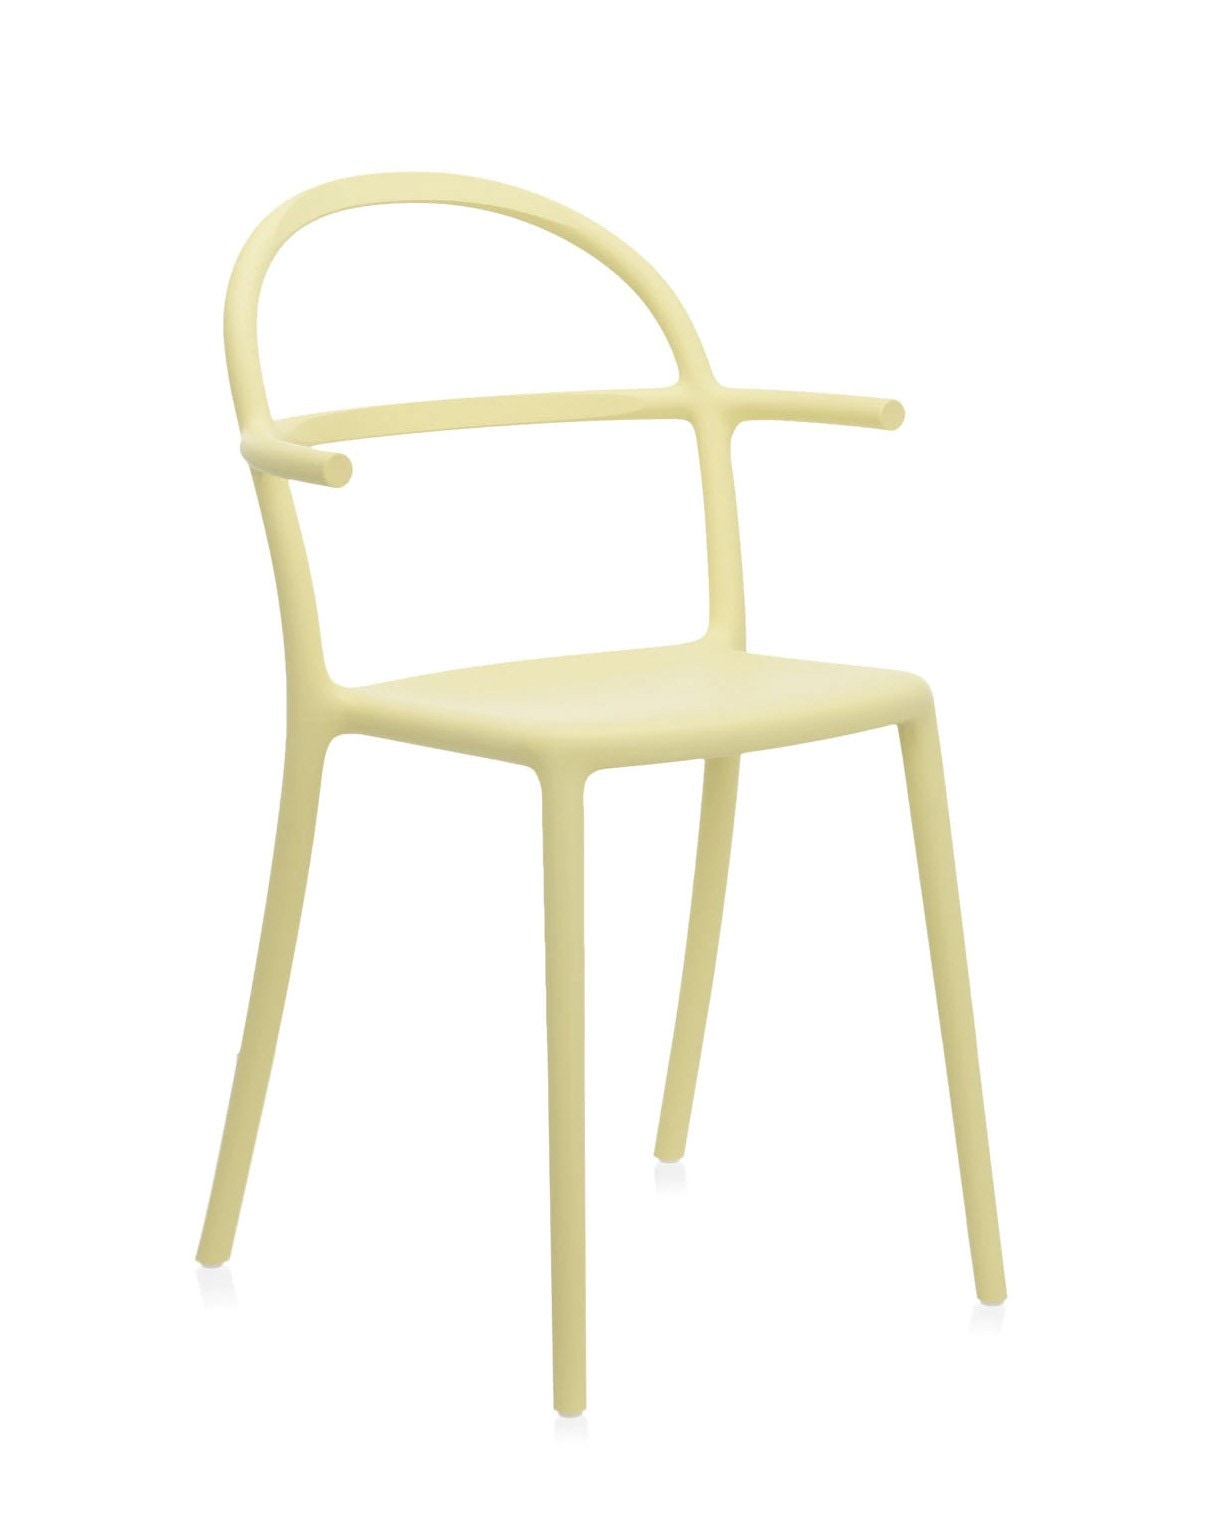 Kartell Generic C Armchair (Priced Each, Sold In Sets of 2)